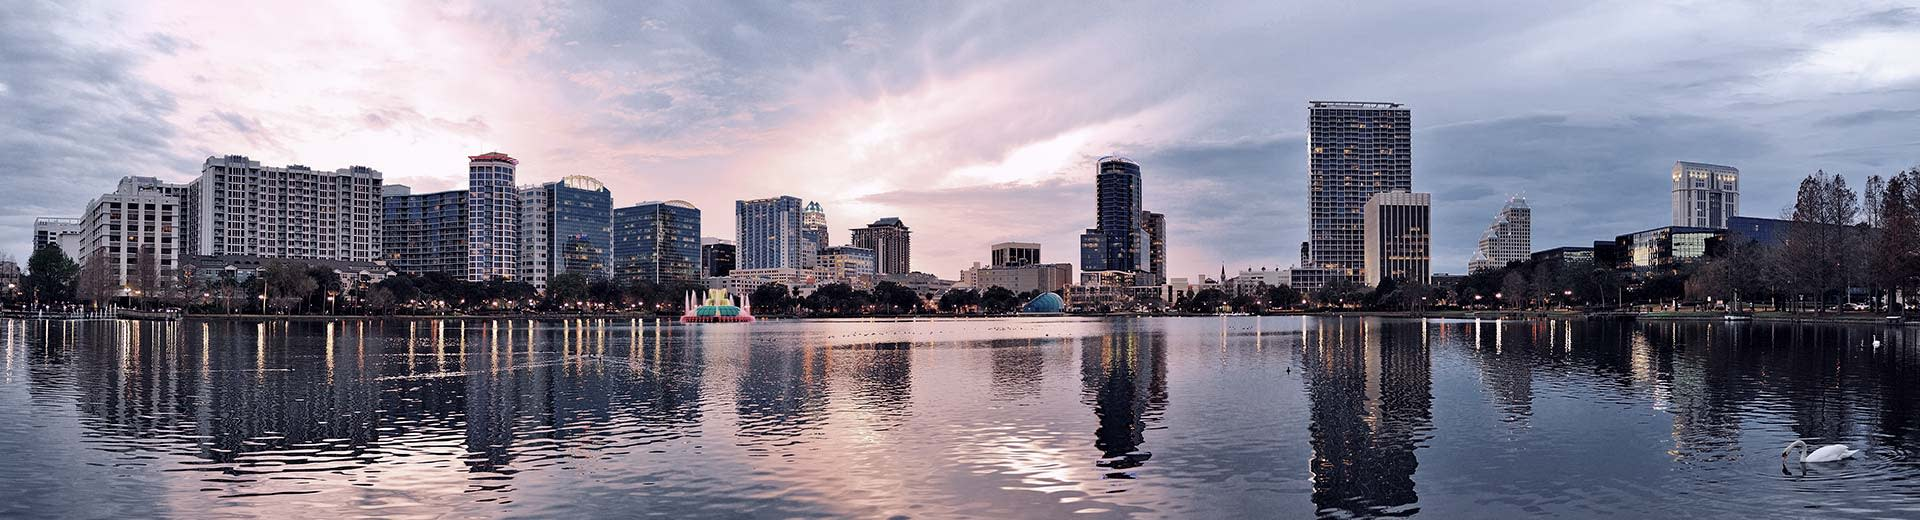 Tall square buildings of Orlando overlook the water of the Atlantic Ocean